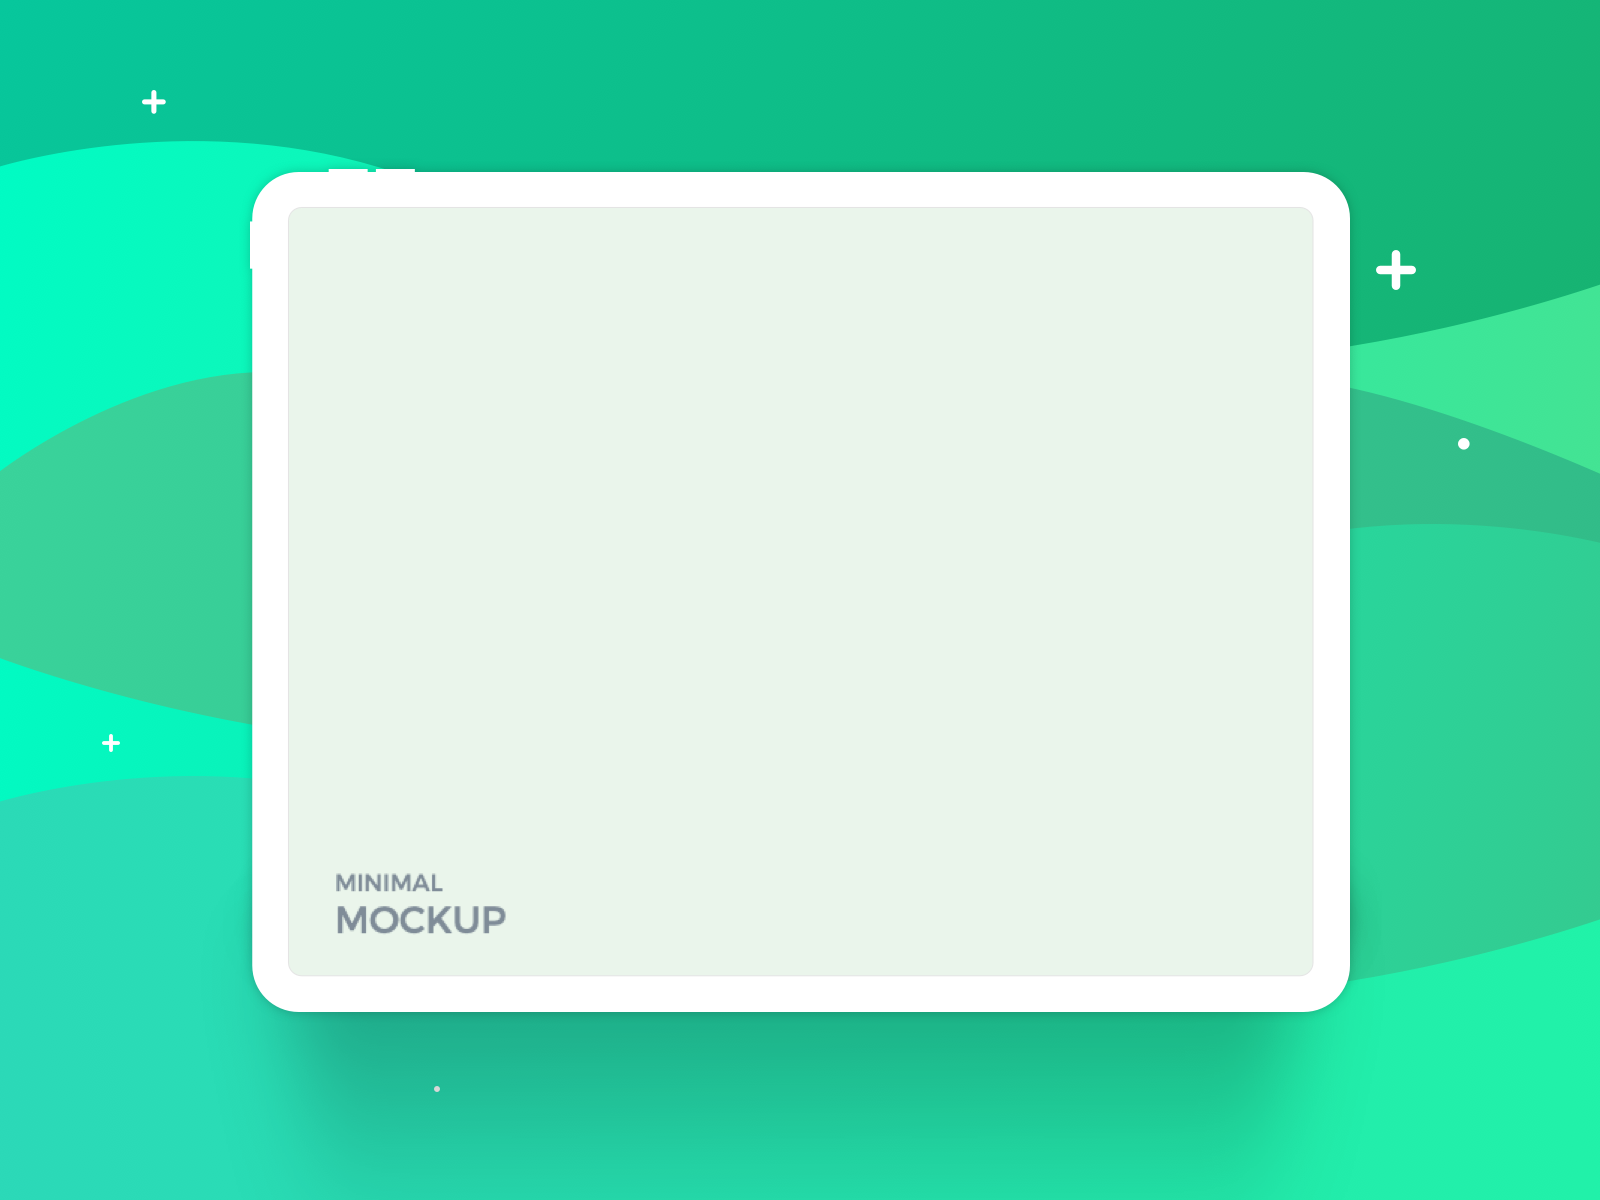 Ipad Pro Minimal Mockup Freebie By Amir Vhora On Dribbble